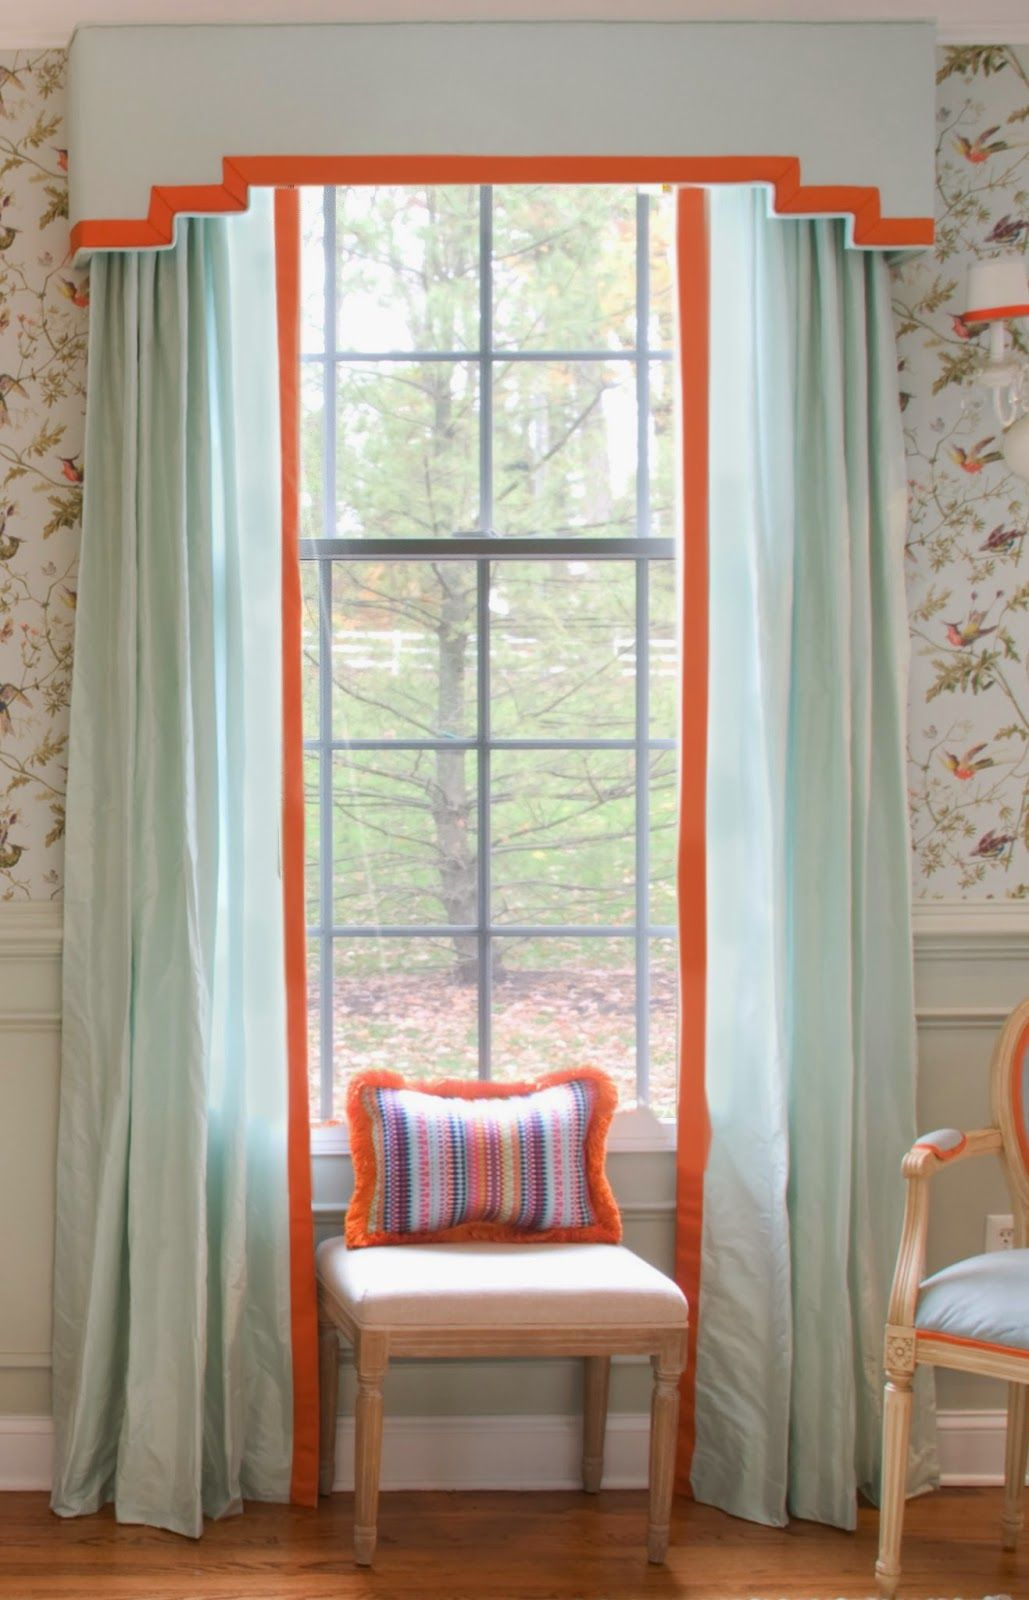 Modern cornice board pale blue silk with orange trim one room challenge dining room reveal stephanie kraus designs